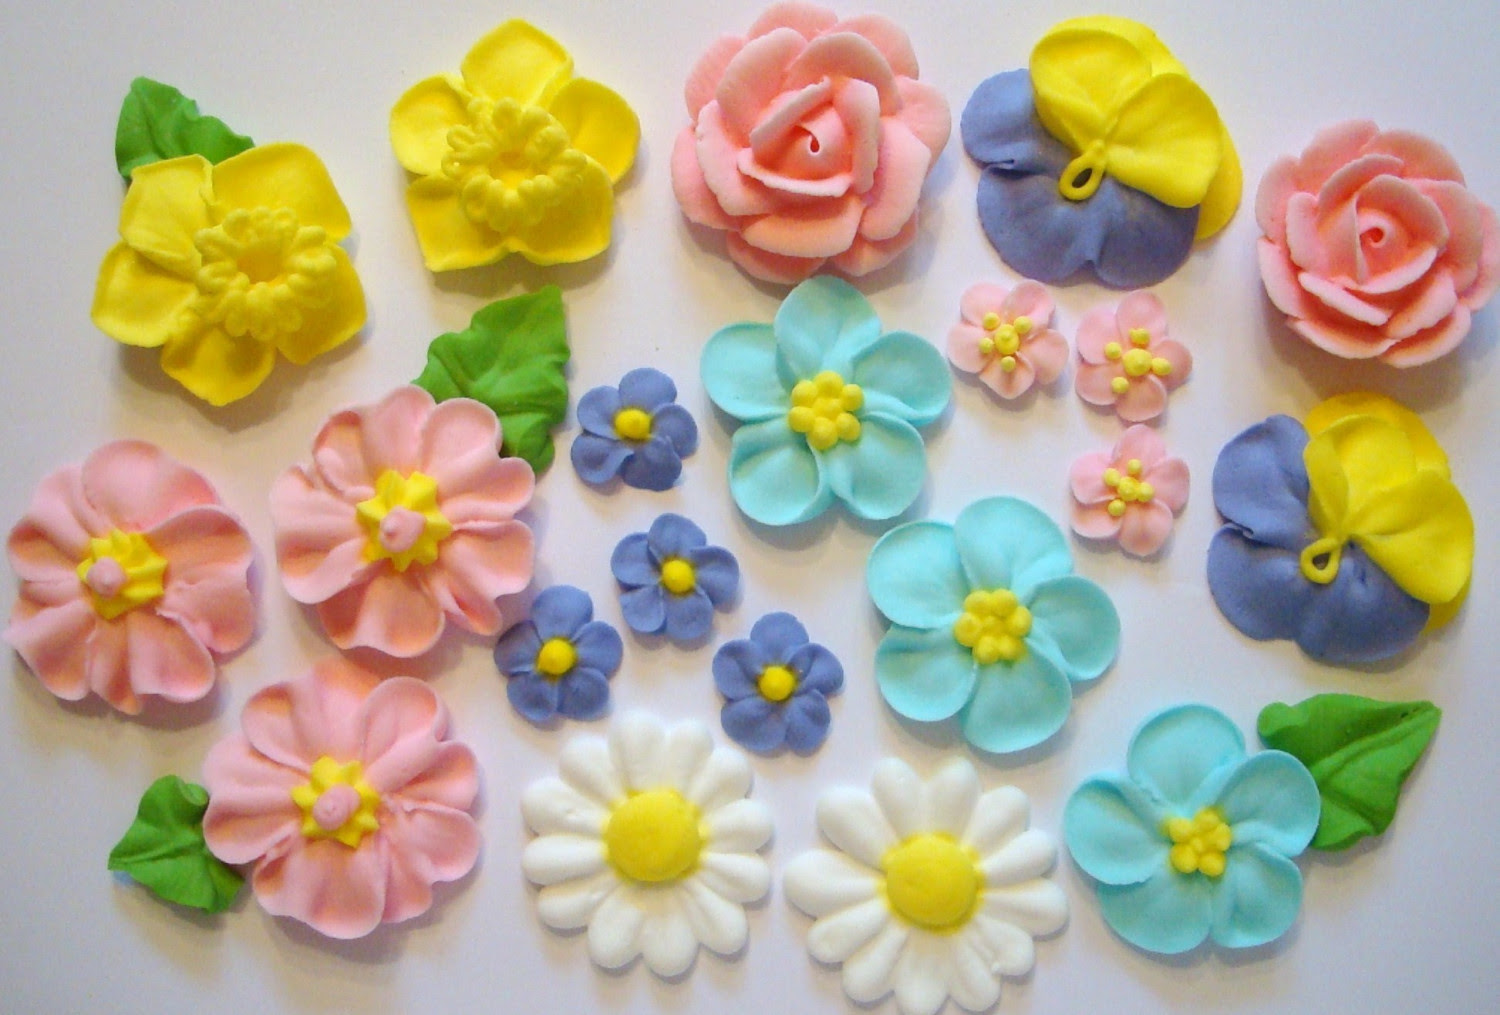 http://prinsesamusang.files.wordpress.com/2013/04/royal-icing-flowers.jpg